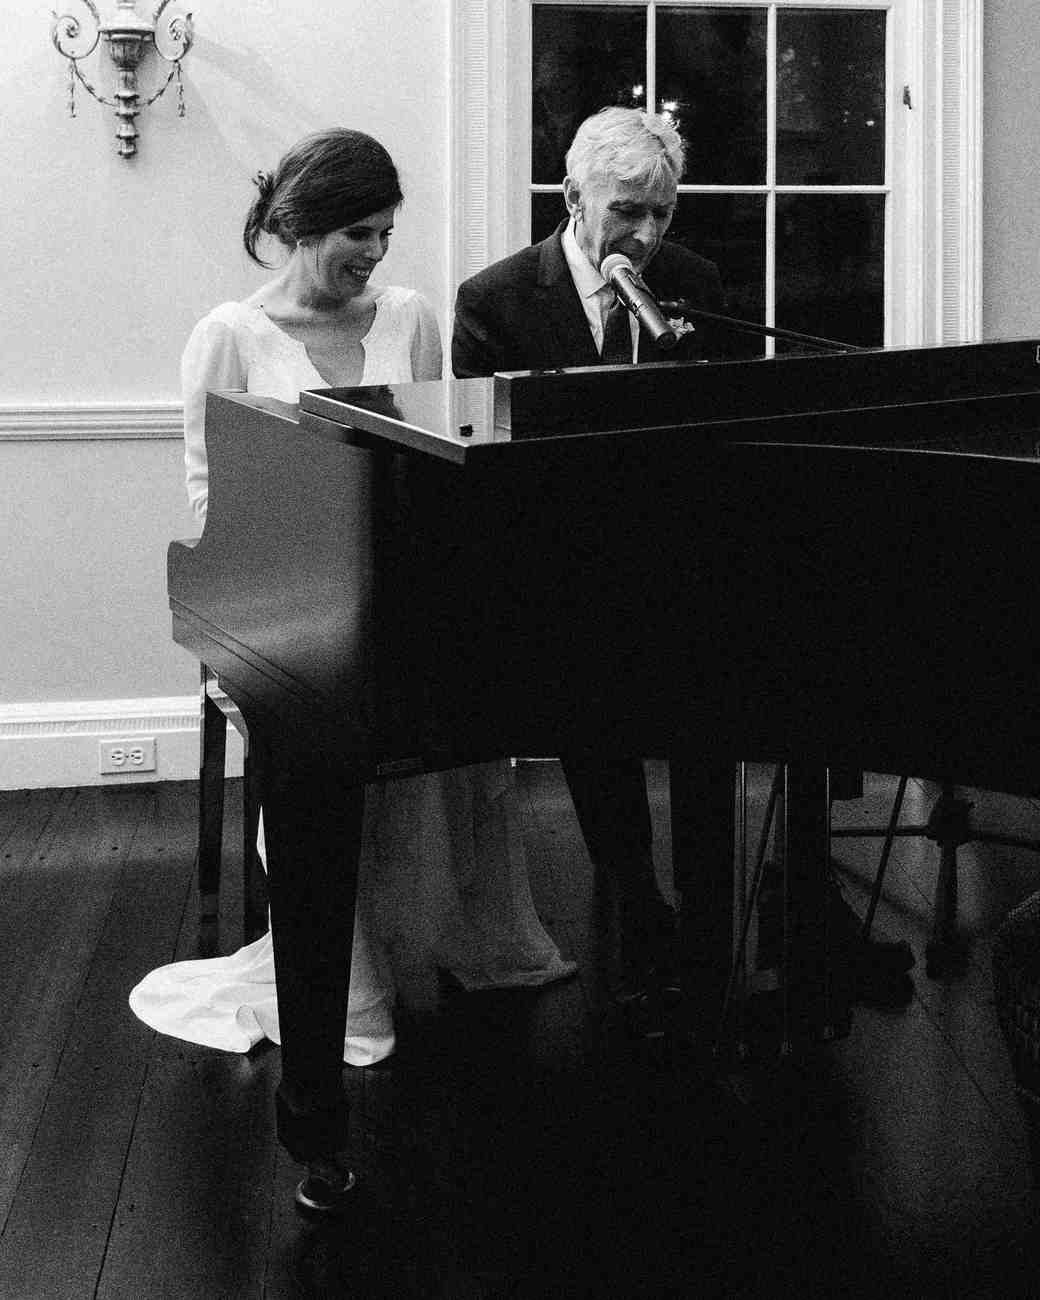 eden jack wedding dad daughter piano